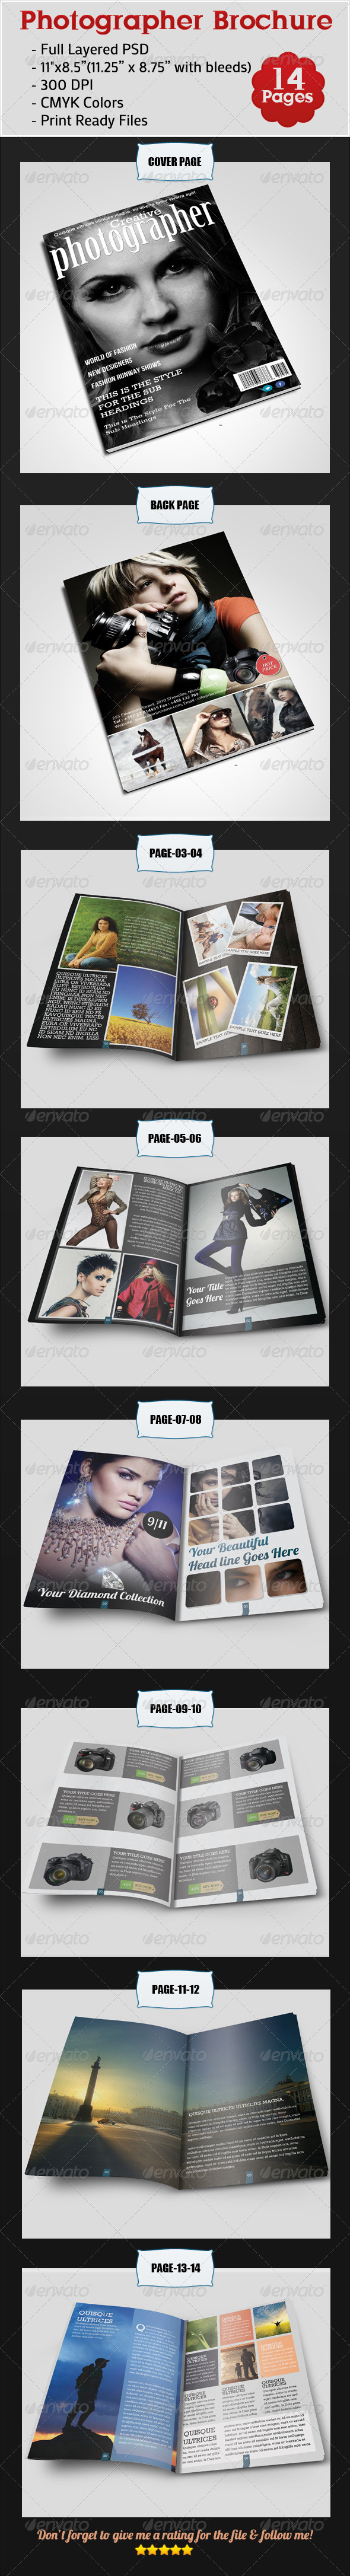 GraphicRiver Photographer Brochure 4172155